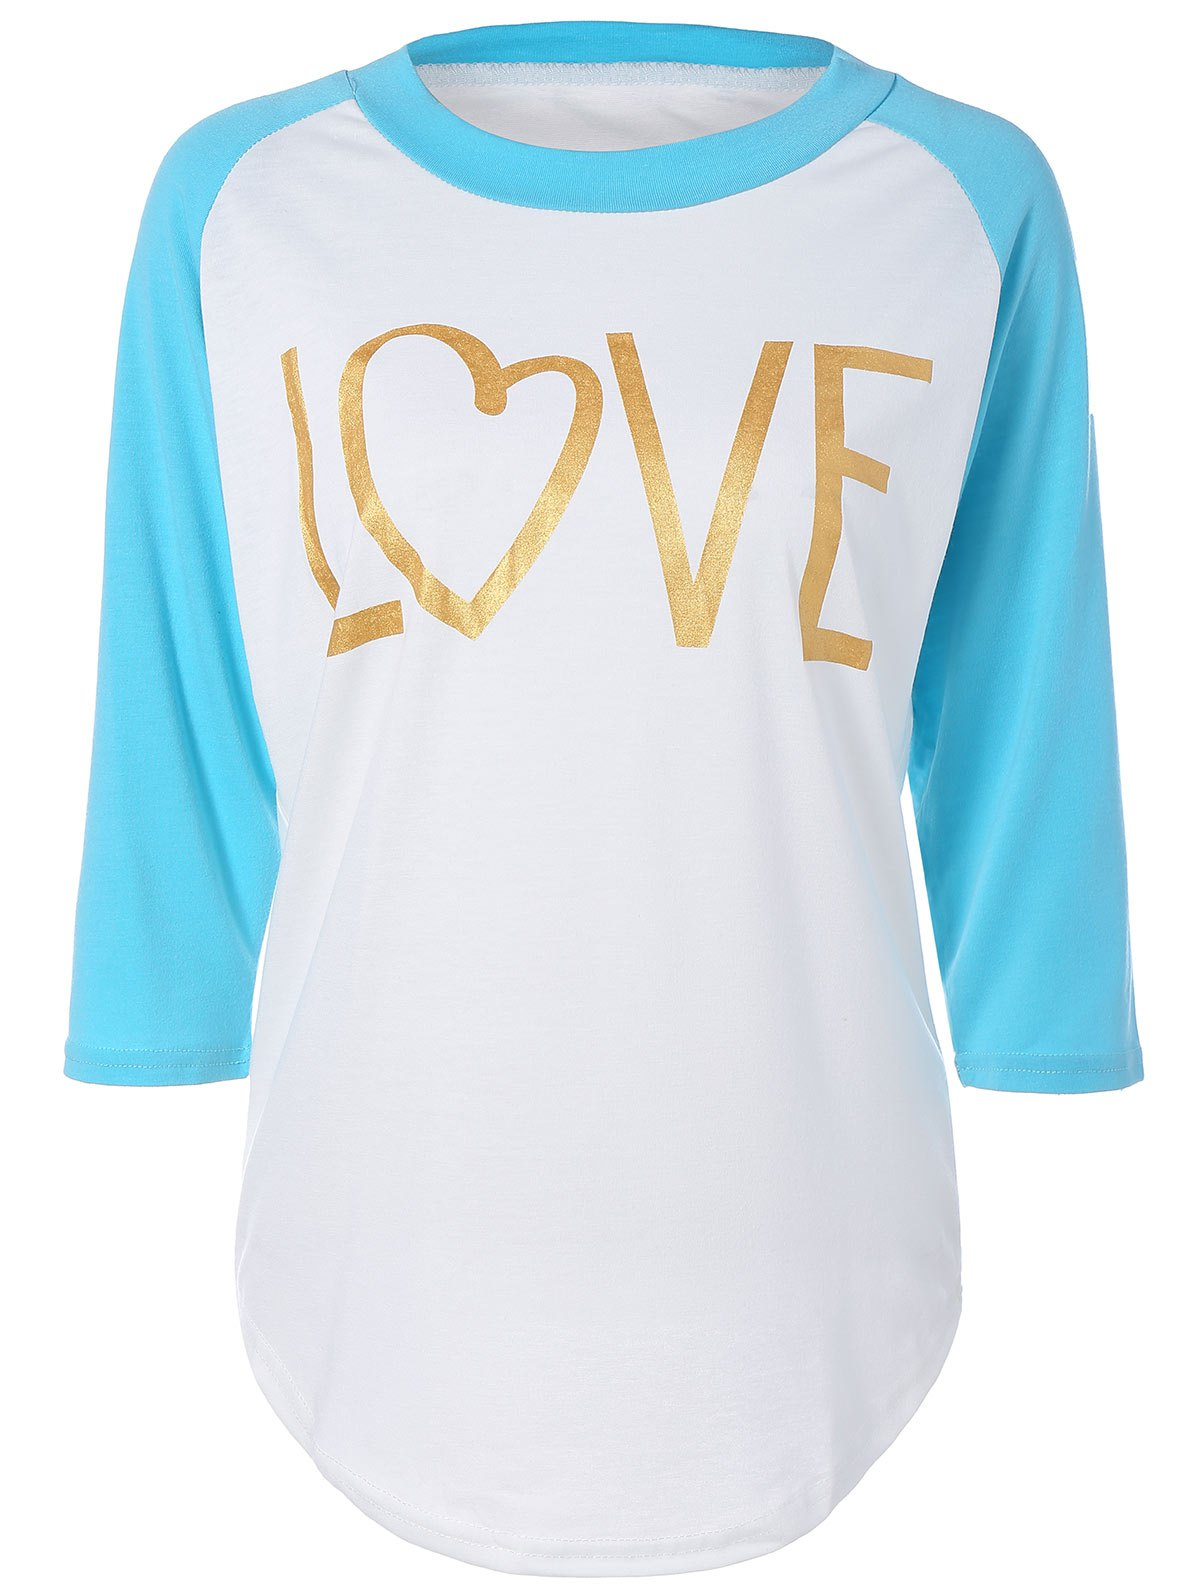 Love Heart Raglan Sleeve T-Shirt - AZURE L